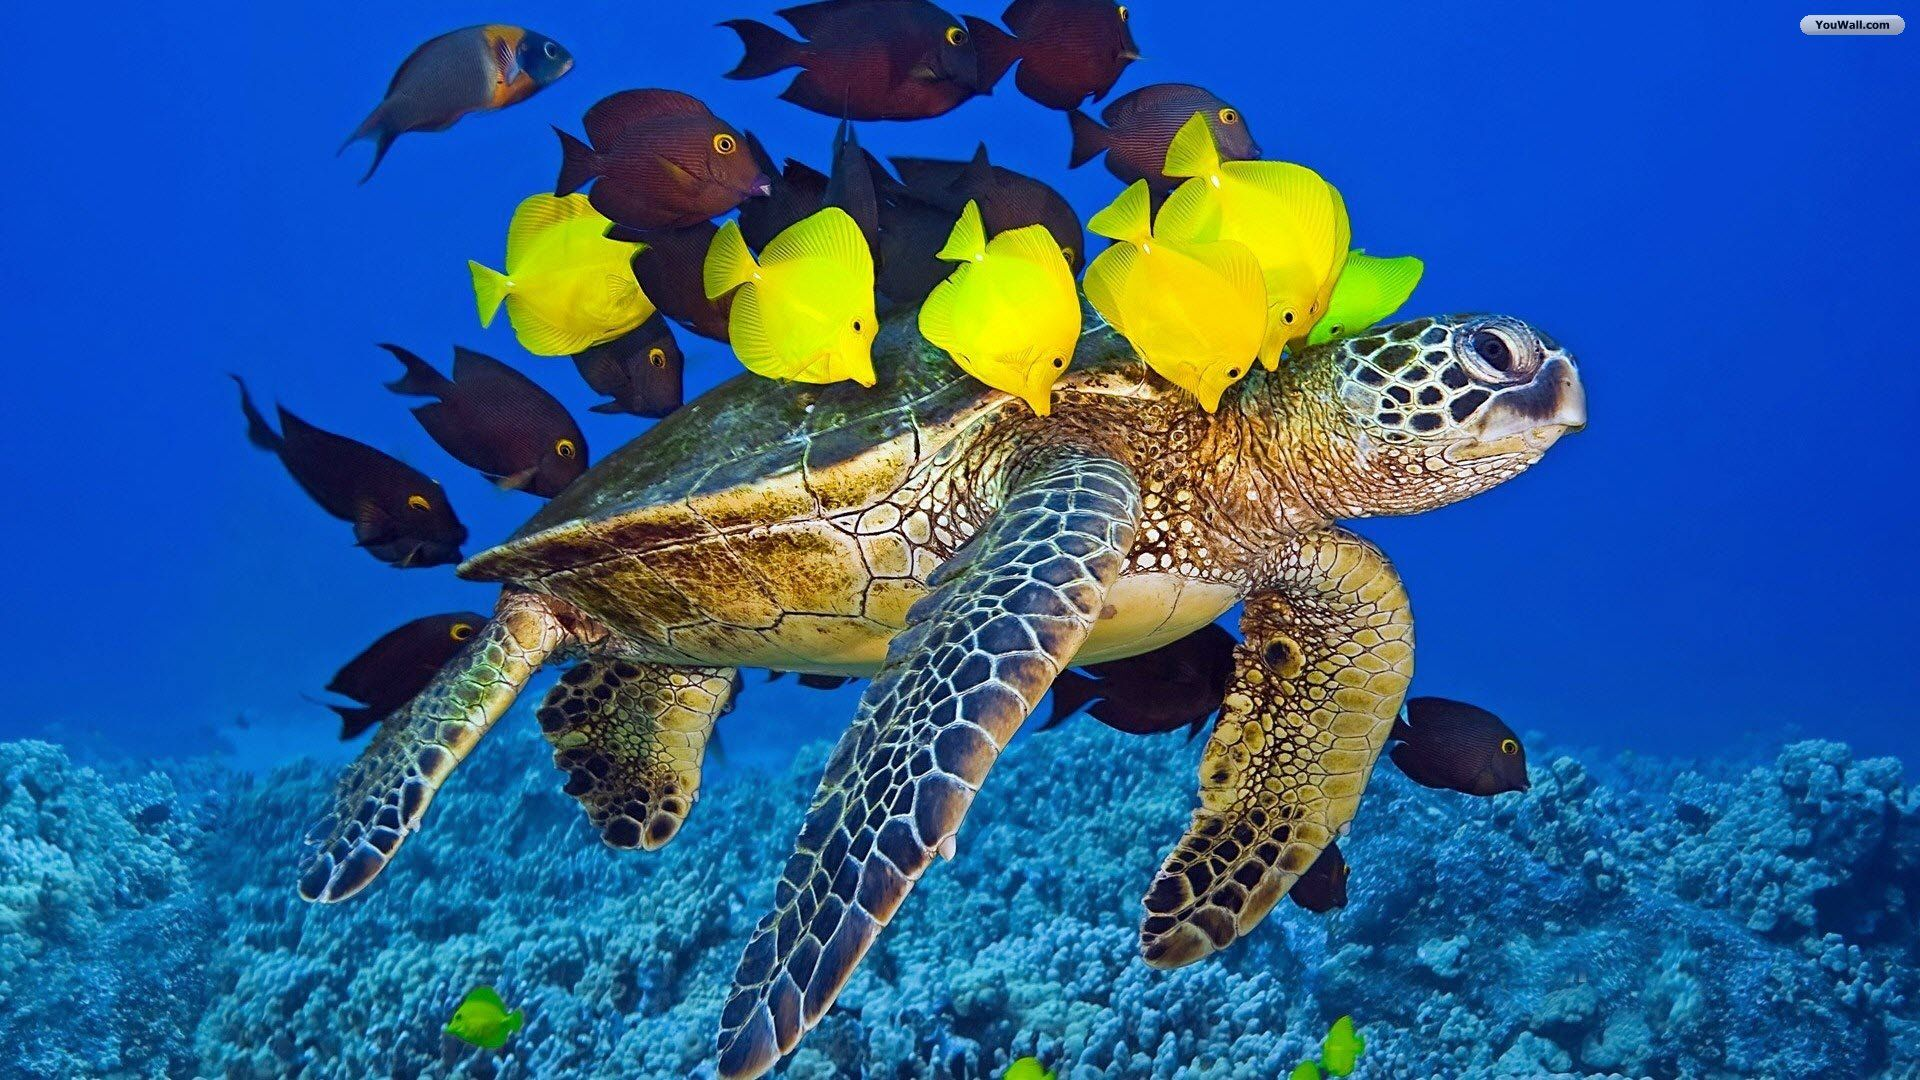 Turtle And Fishes Wallpaper